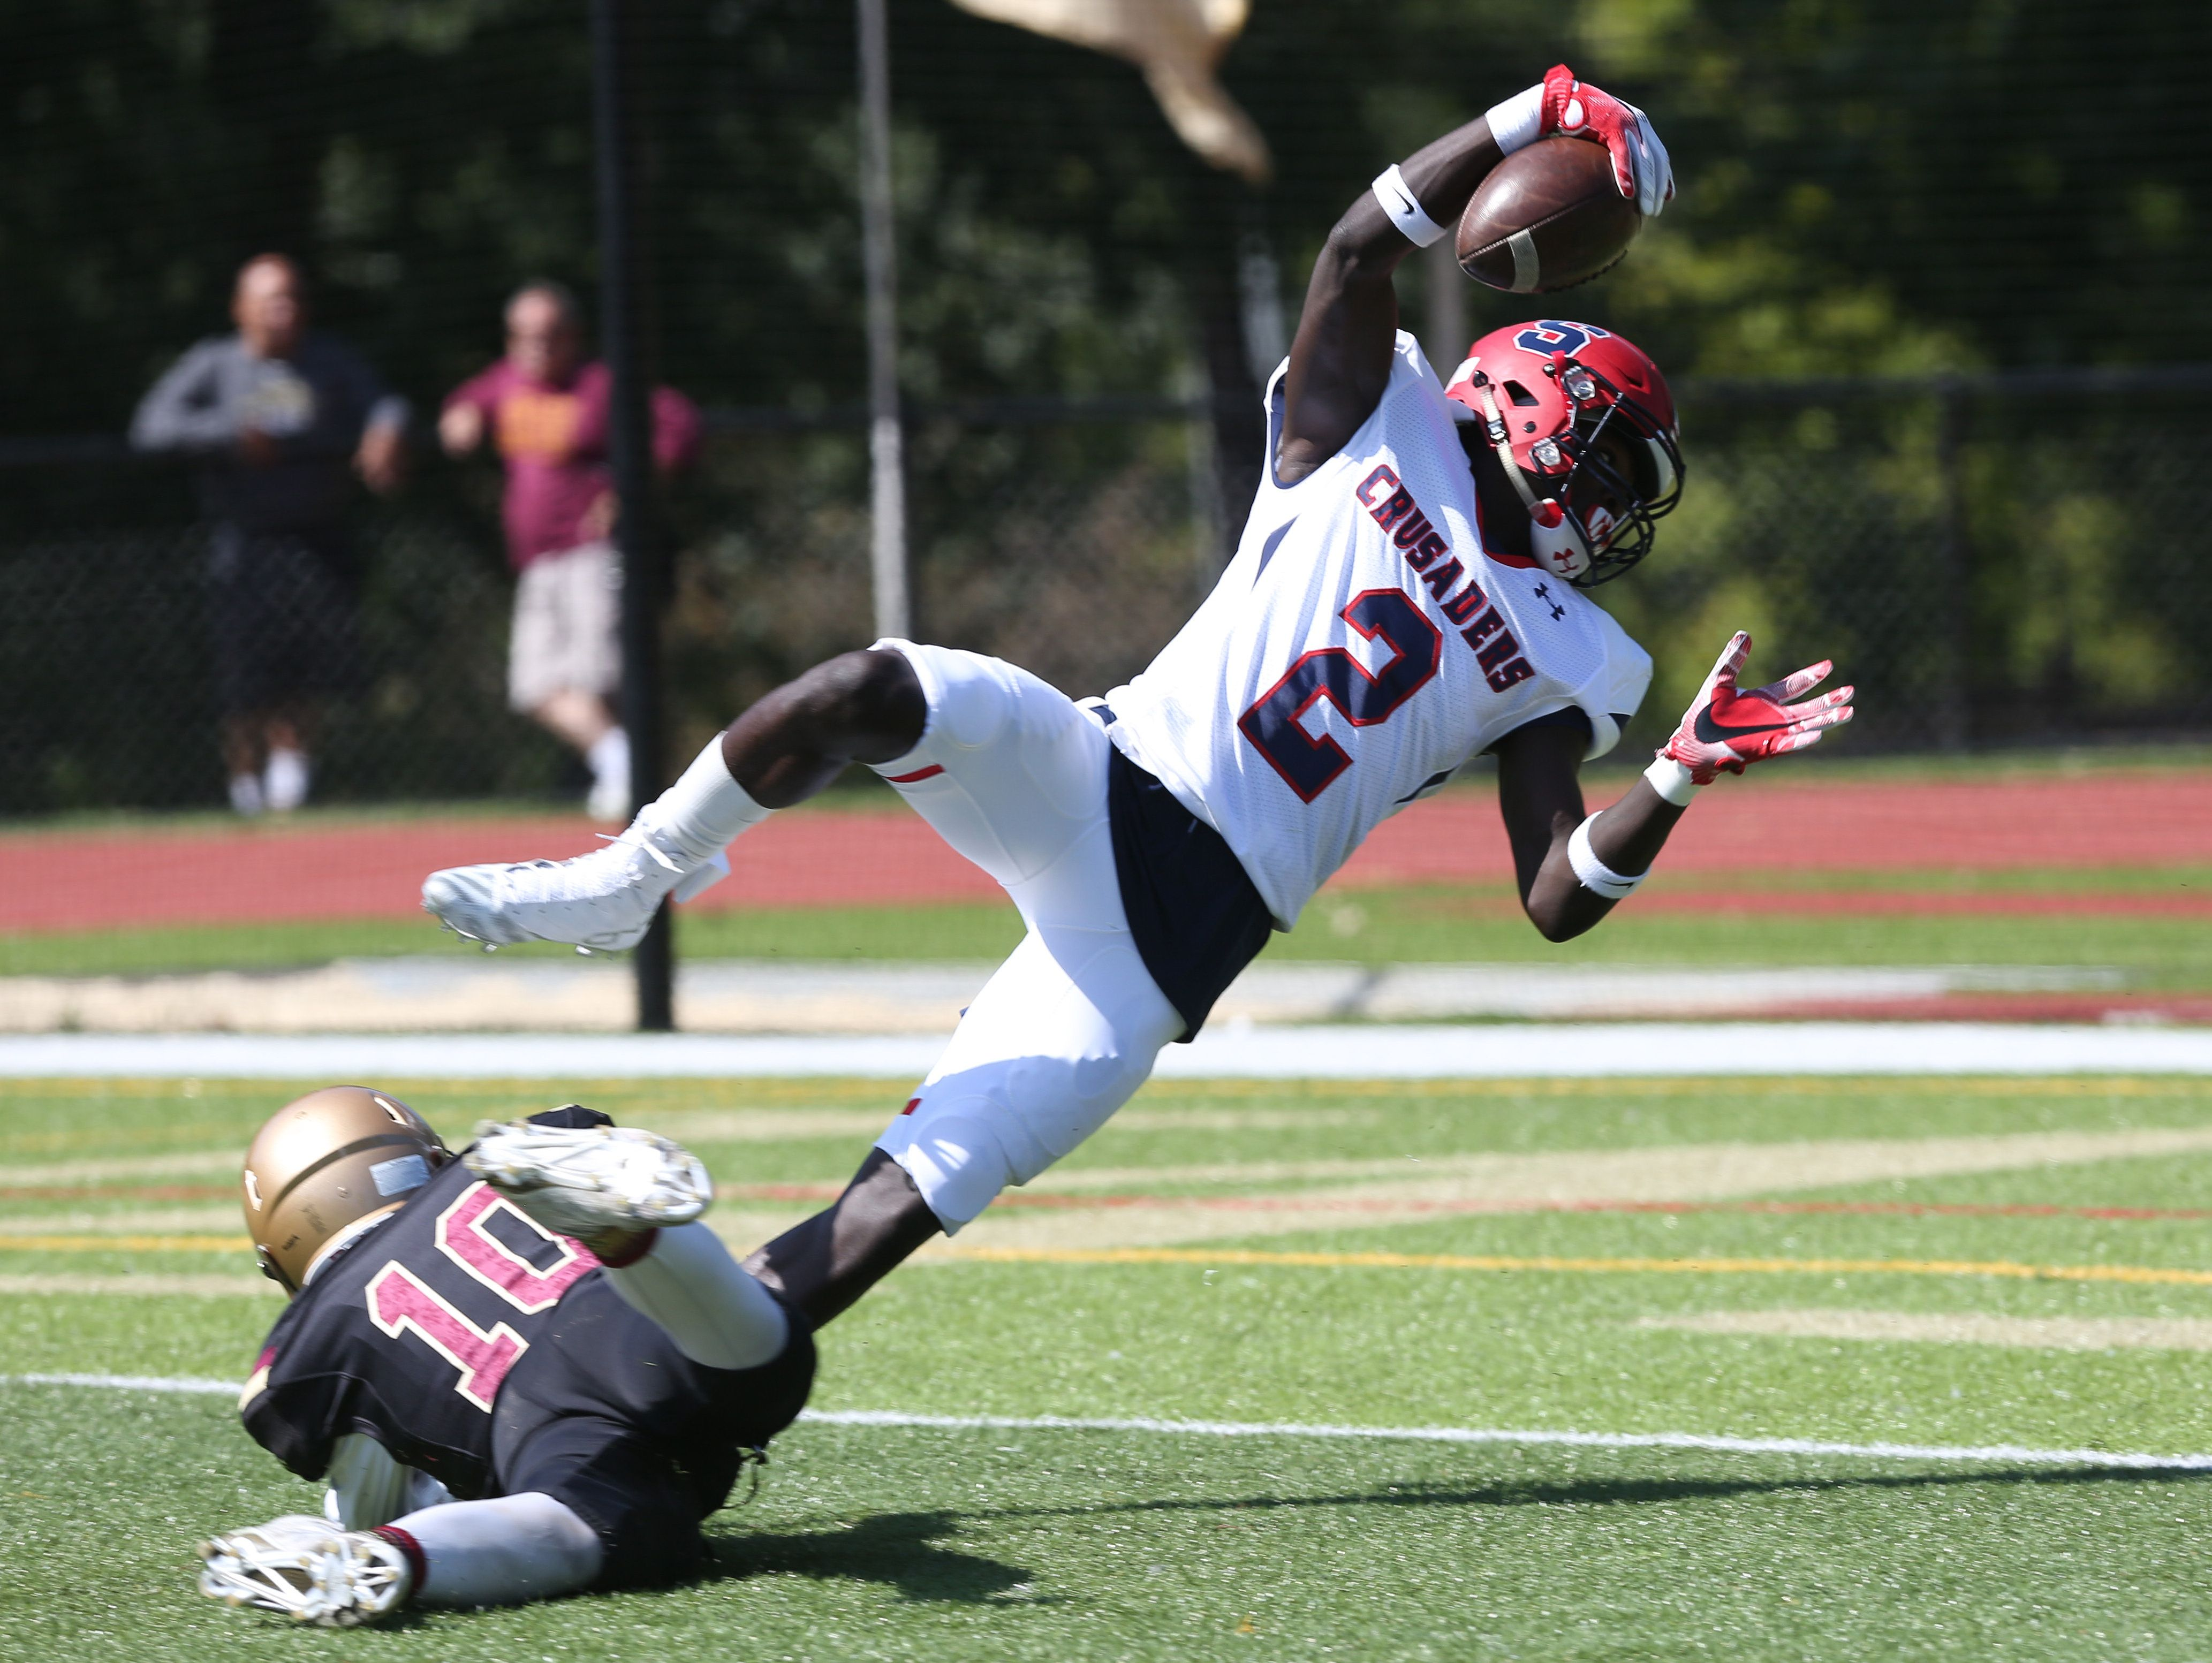 Stepinac's Atrilleon Williams (2) dives into the end zone while being hit by Iona's Michael Degasparis (10) for his first touchdown of the game, during football action at Iona Prep in New Rochelle Sept. 17, 2016. Stepinac won the game 42-34.